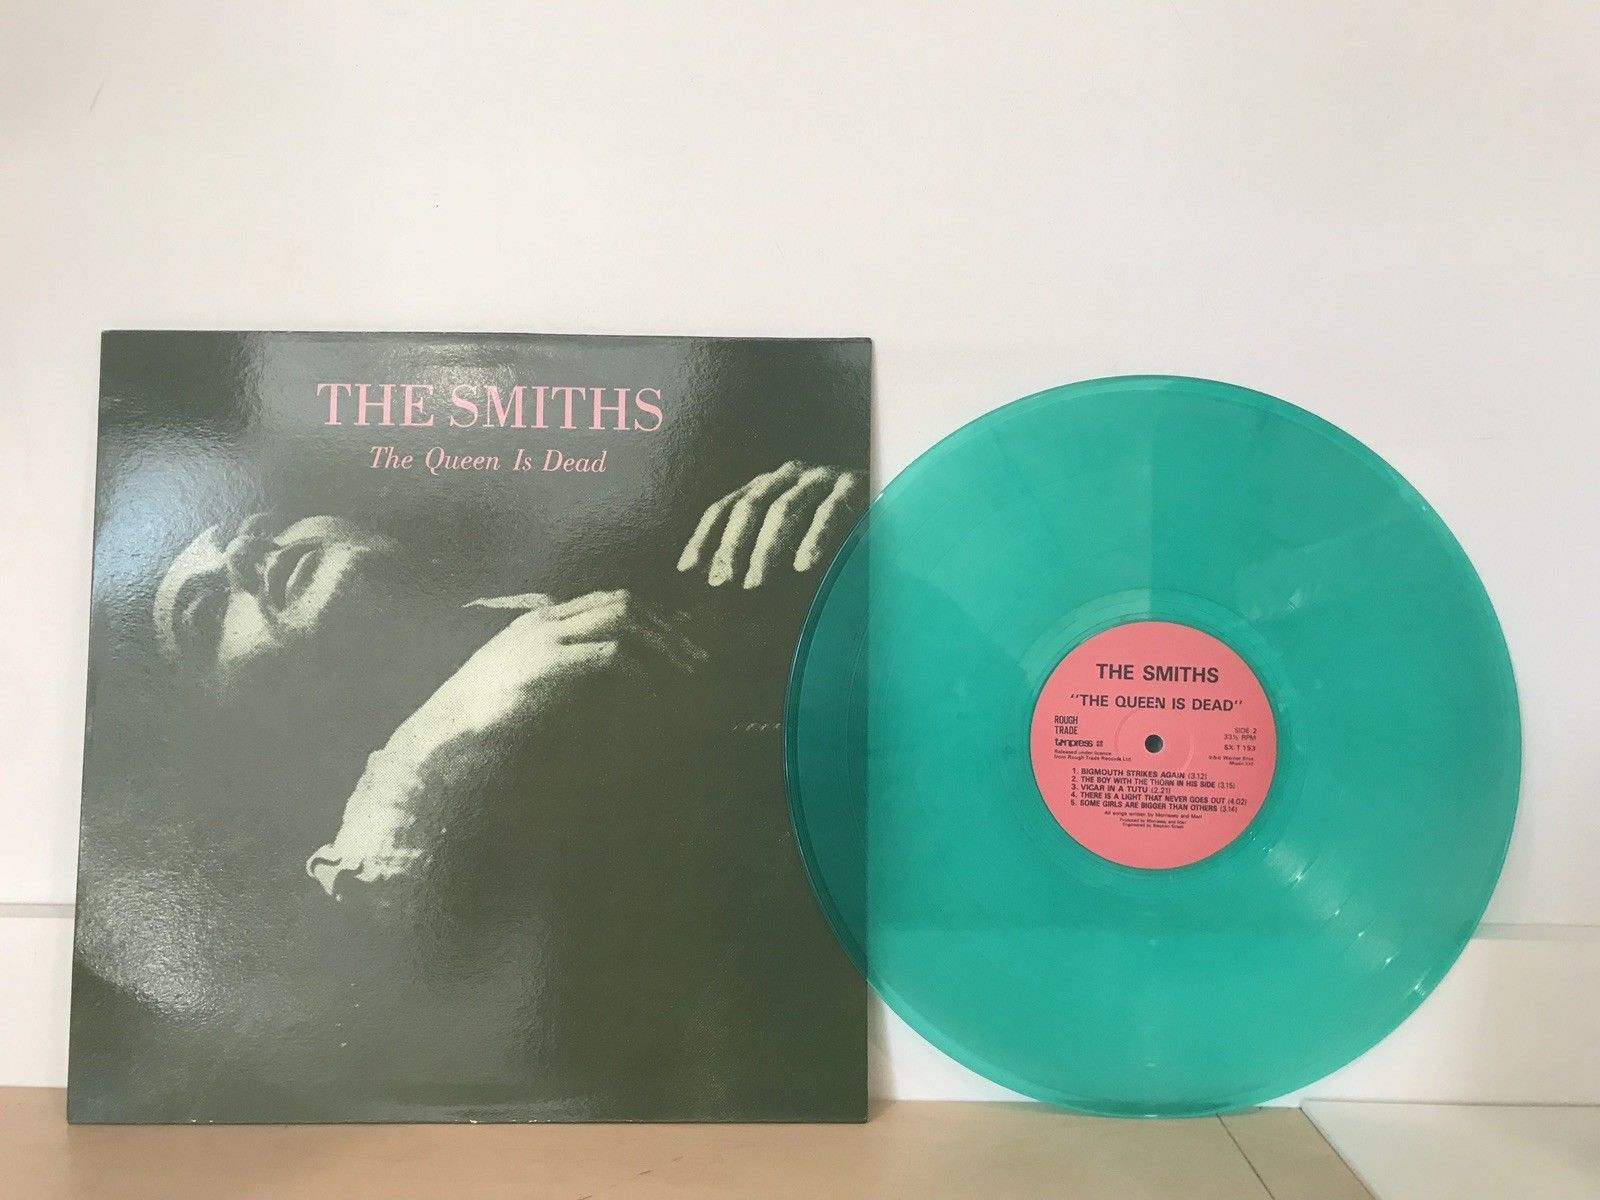 The Smiths The Queen Is Dead Like New Green Colored Vinyl Lp Record Vinyl Records The Queen Is Dead New Vinyl Records